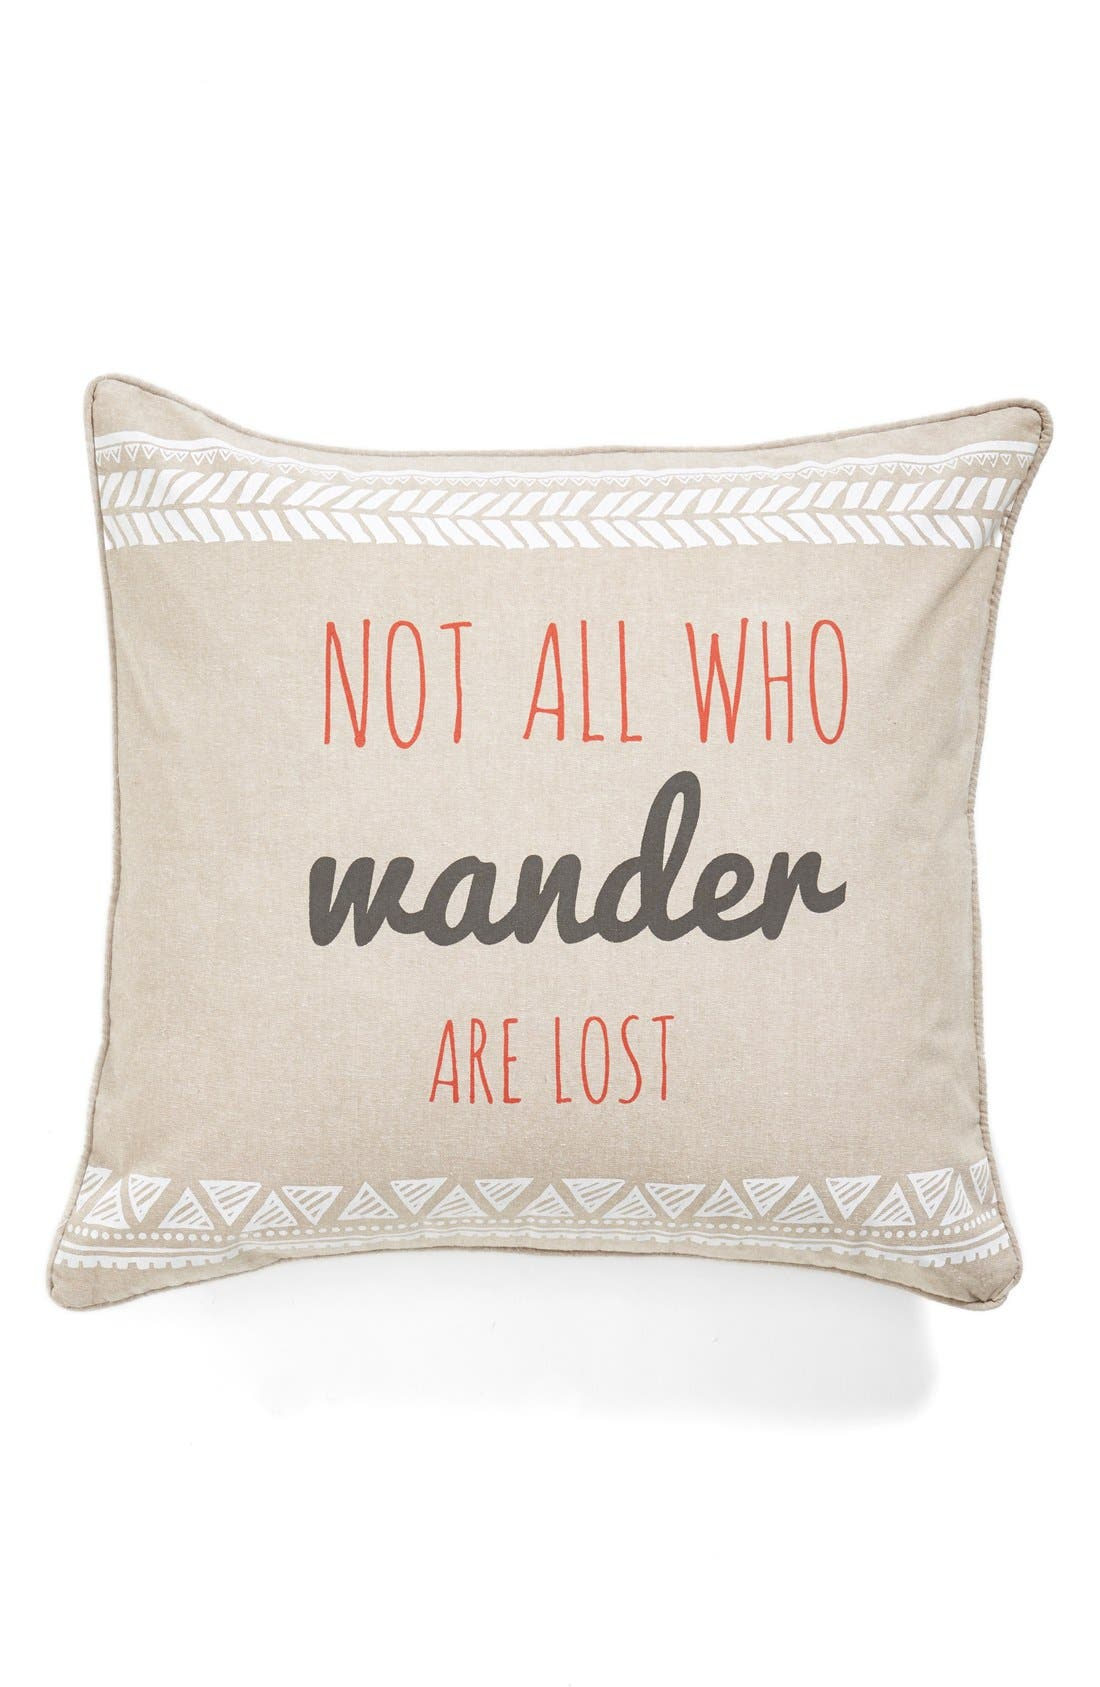 Alternate Image 1 Selected - Levtex 'Not All Who Wander Are Lost' Decorative Pillow